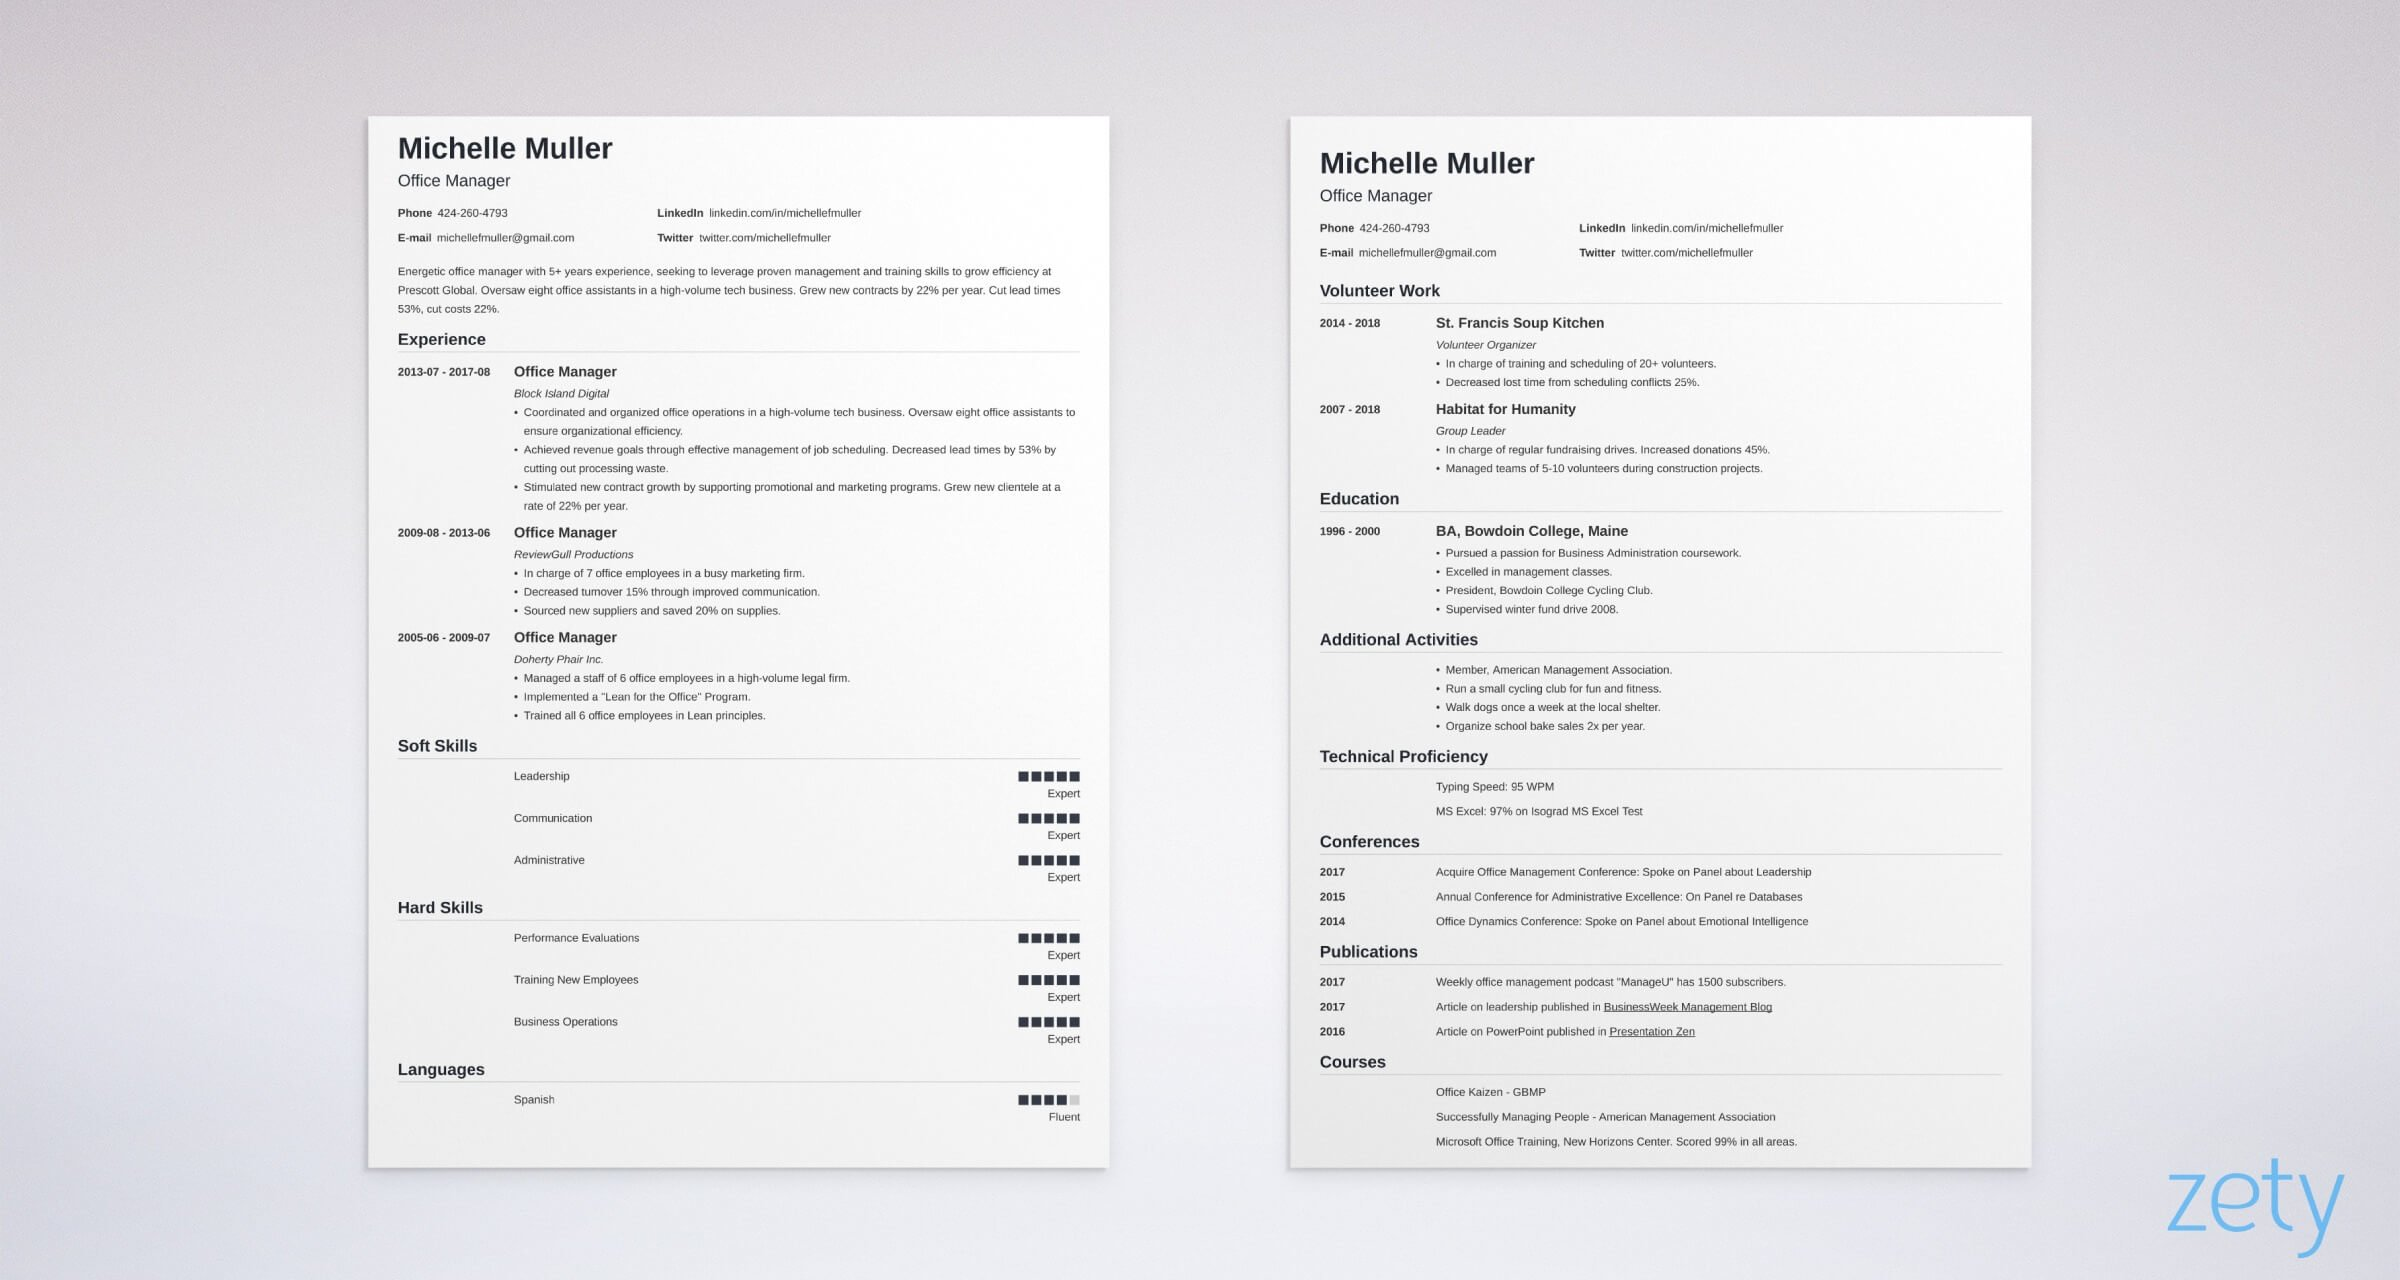 resume it crush your chances format tips one or two nanica1 front desk customer service Resume One Or Two Page Resume 2019